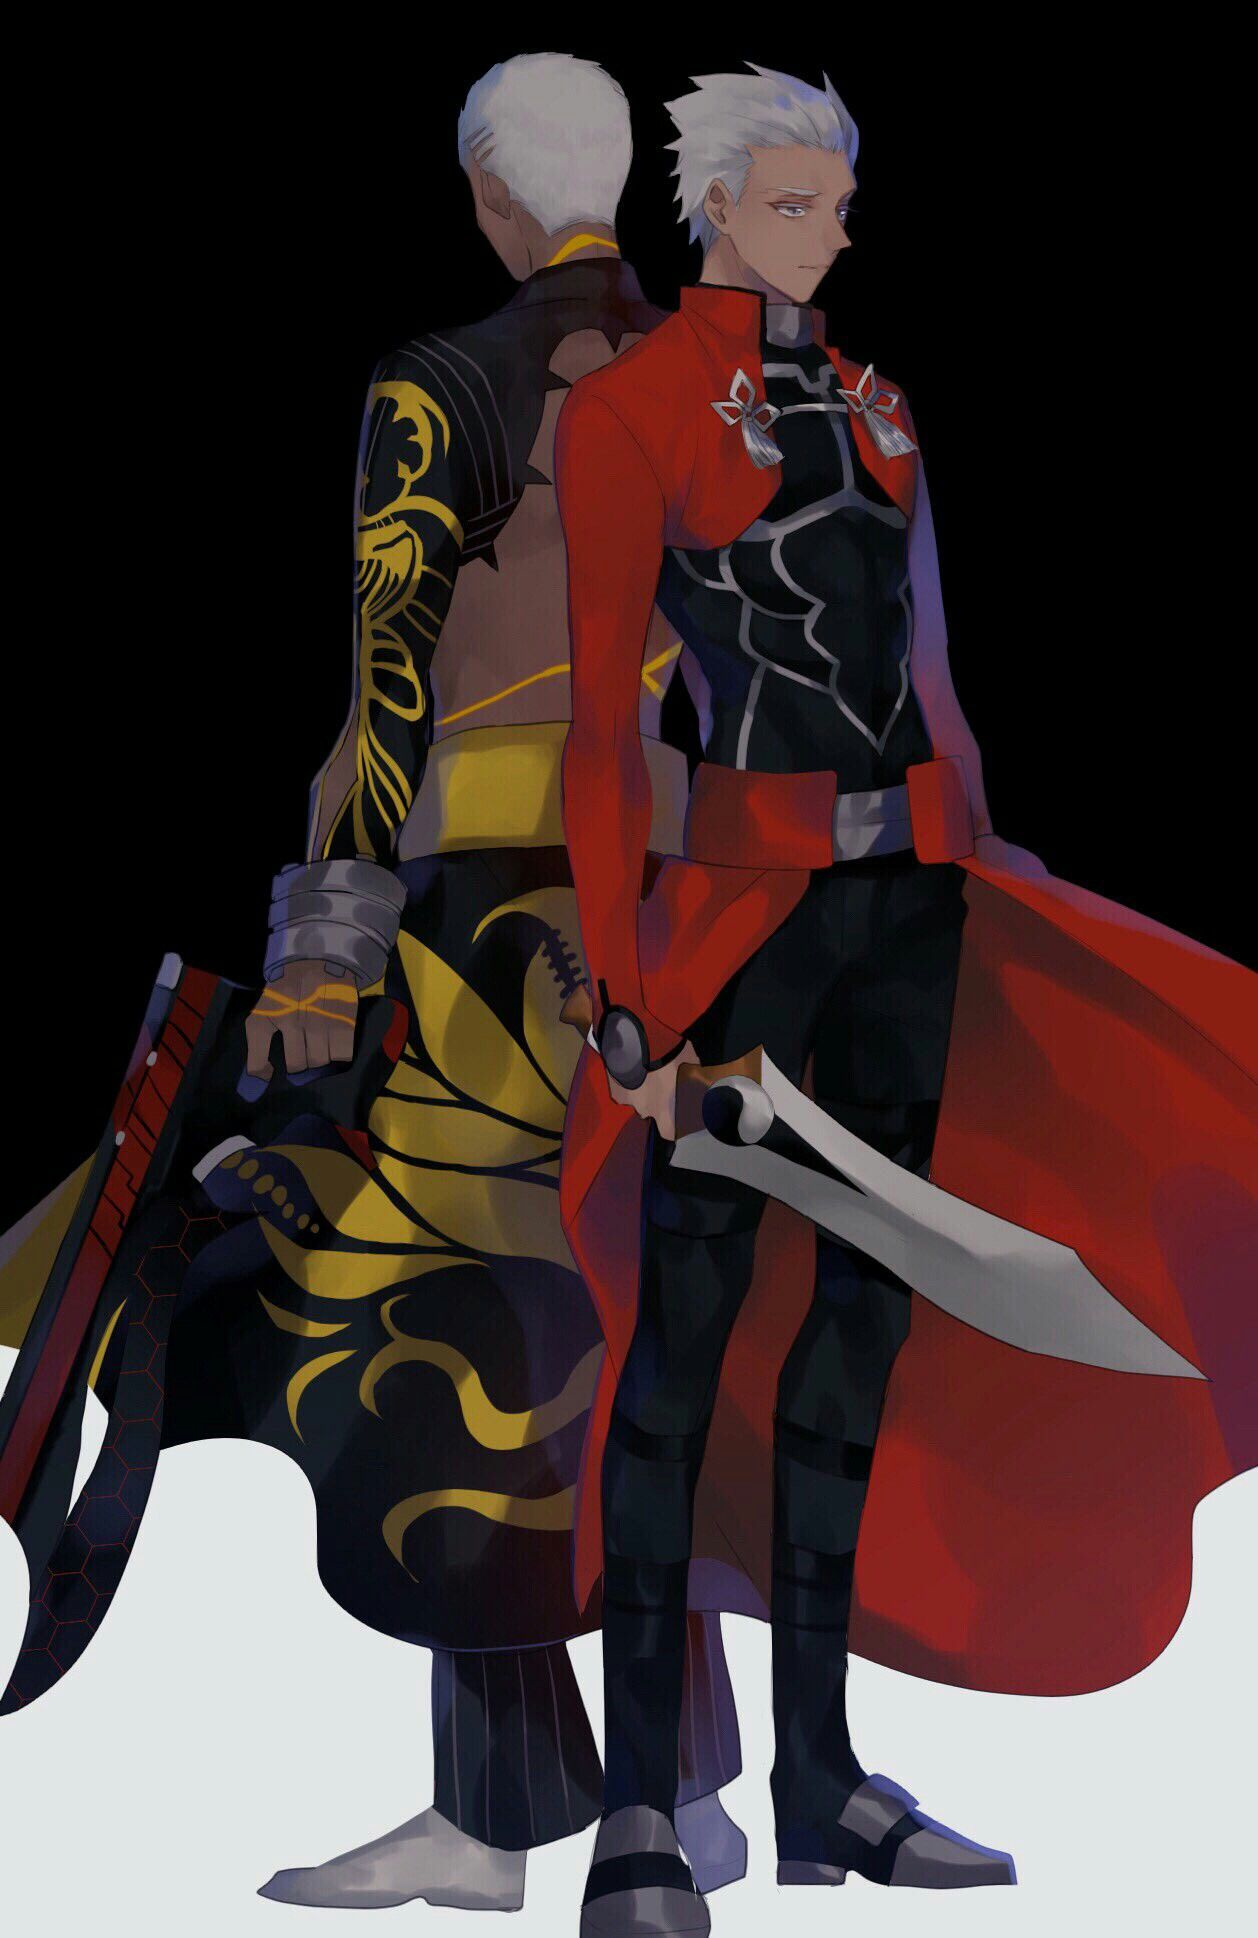 Emiya Archer Emiya Alter Fate Archer Fate Stay Night Fate Anime Series Despite emiya (alter)'s relatively low base atk stat, he is able to output excellent damage when the situation calls for it through projection, icy sneer and his independent action passive. emiya archer emiya alter fate